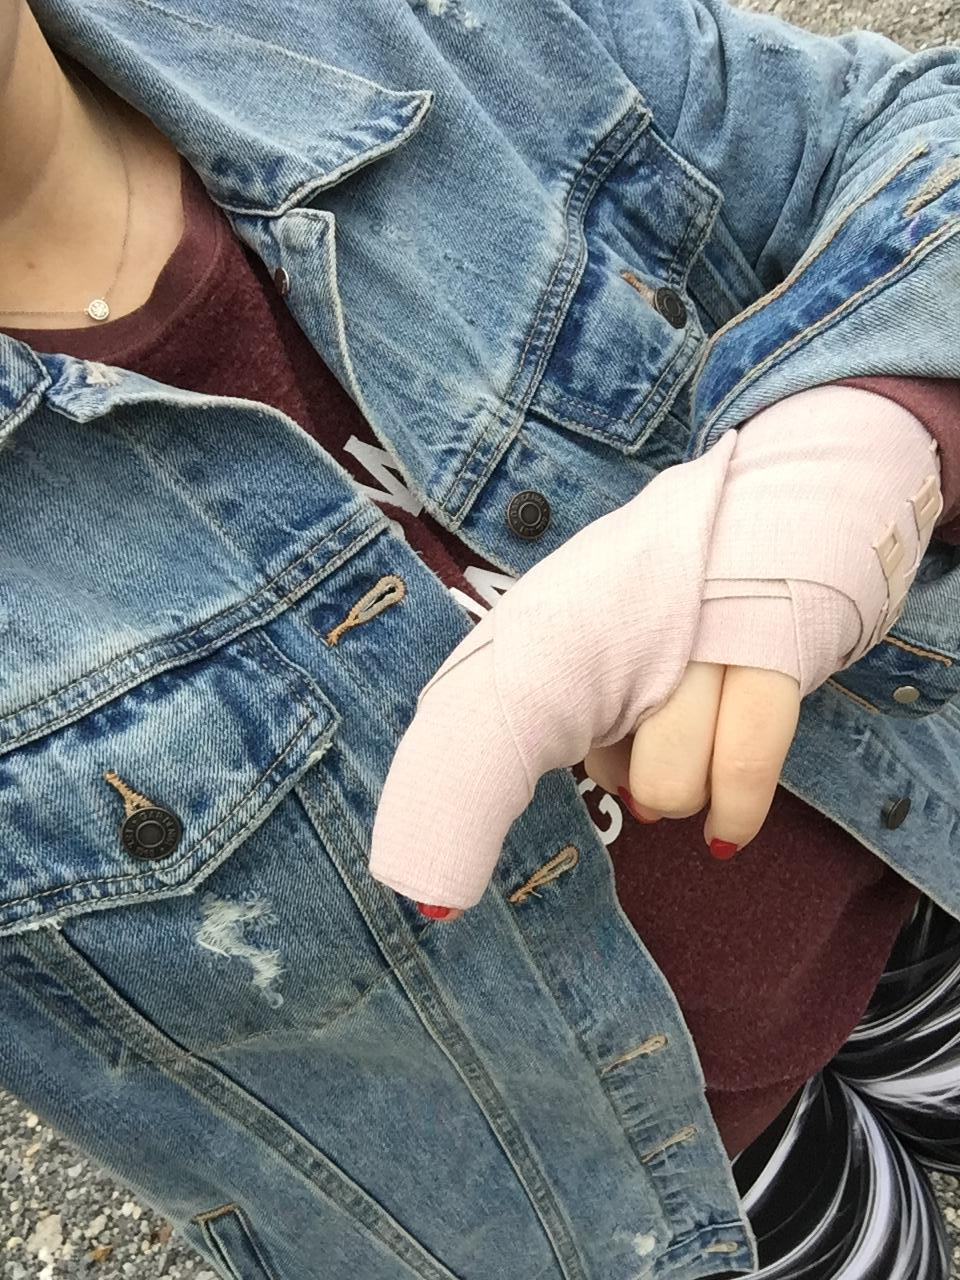 Sasha's hand all bandaged up right after her trip to Urgent Care where they told her she fractured her finger